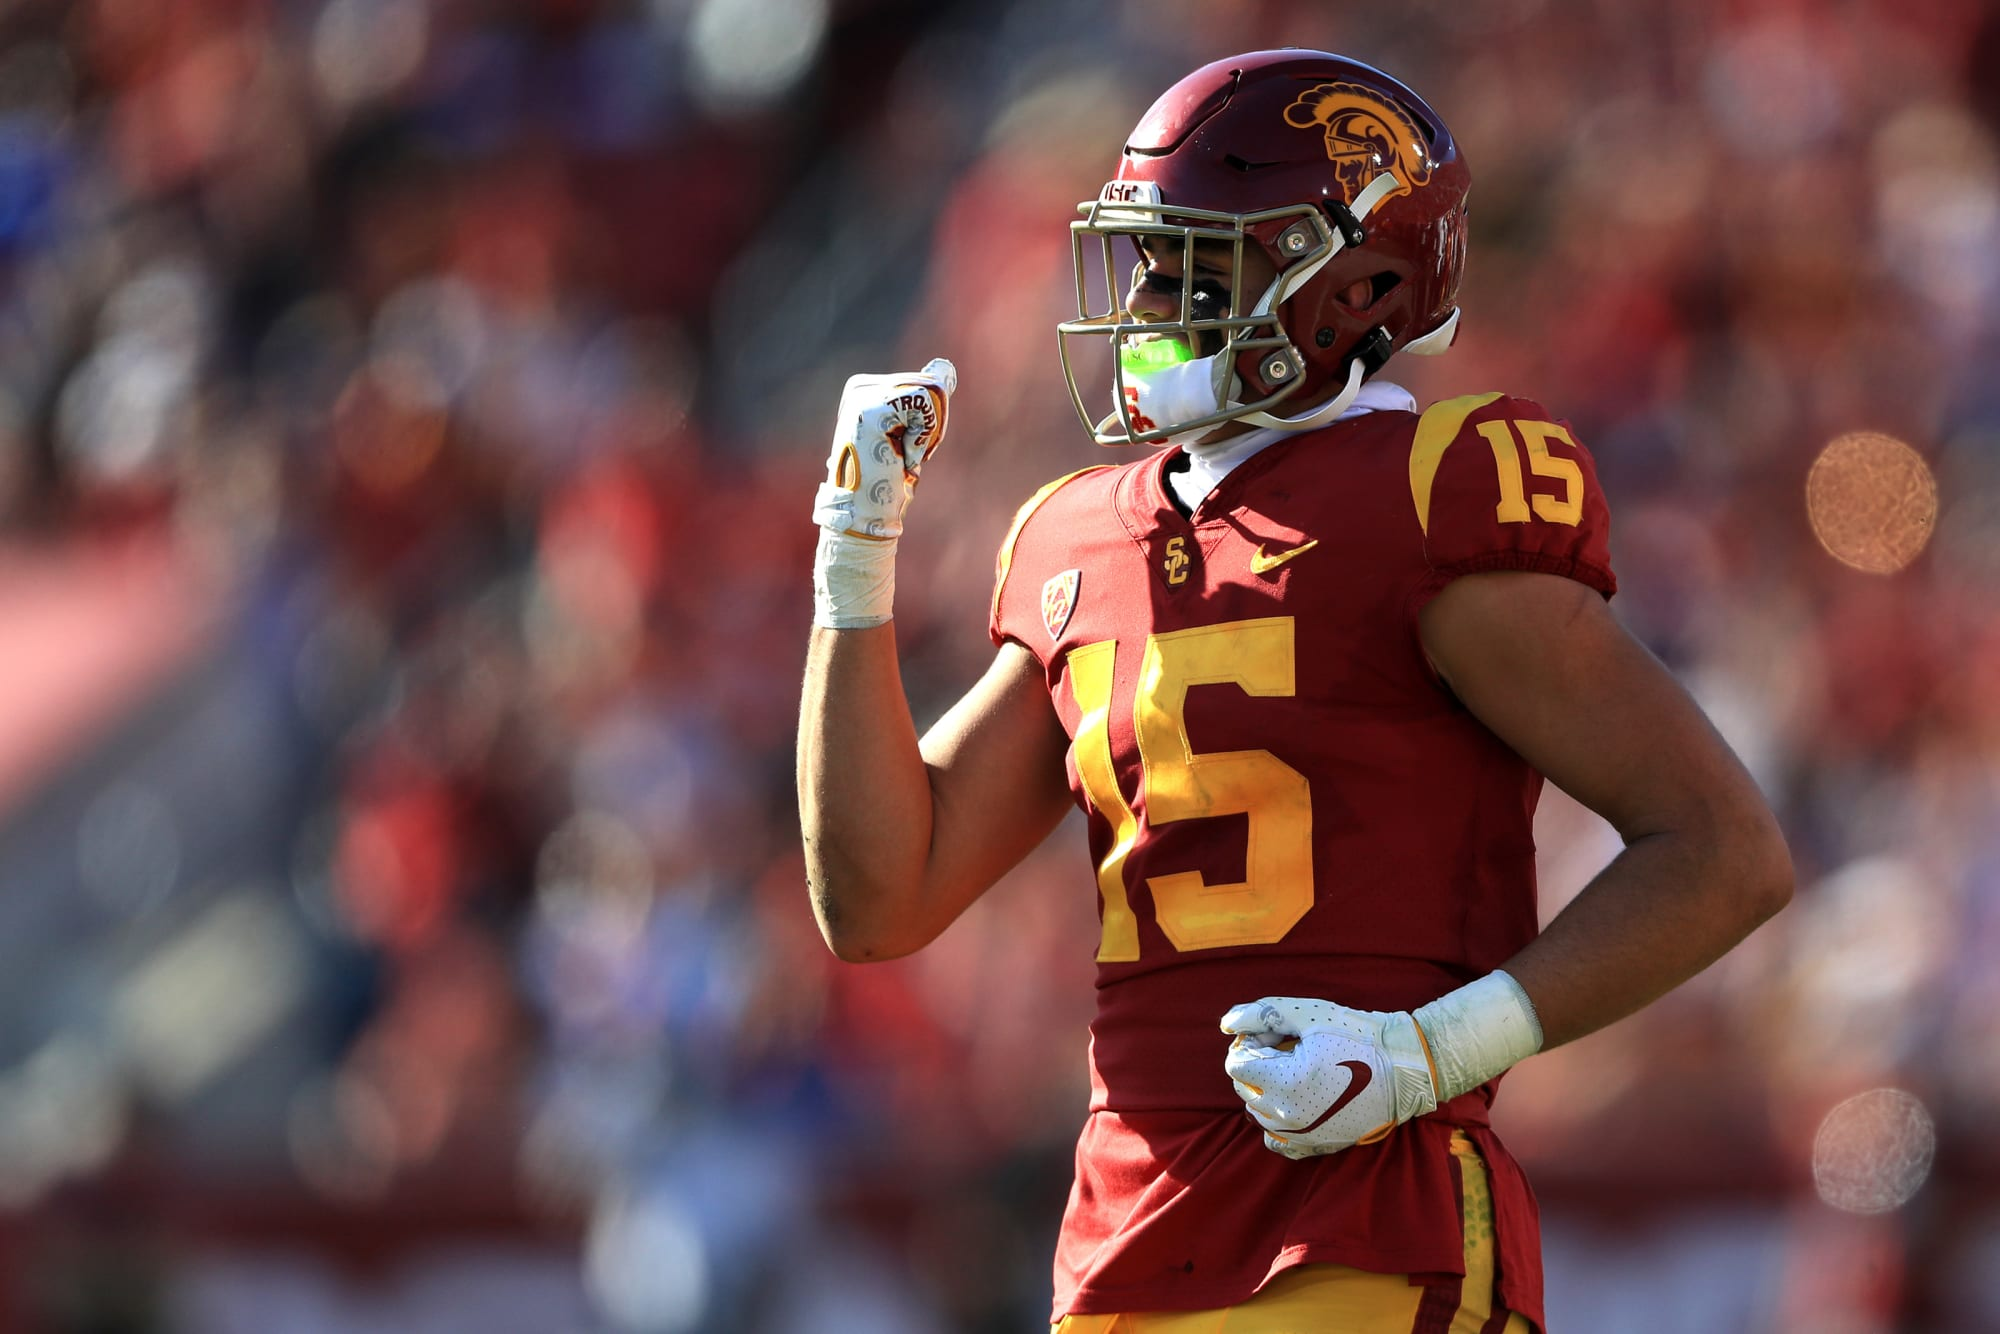 USC football's receiving corps is going to be elite in 2021